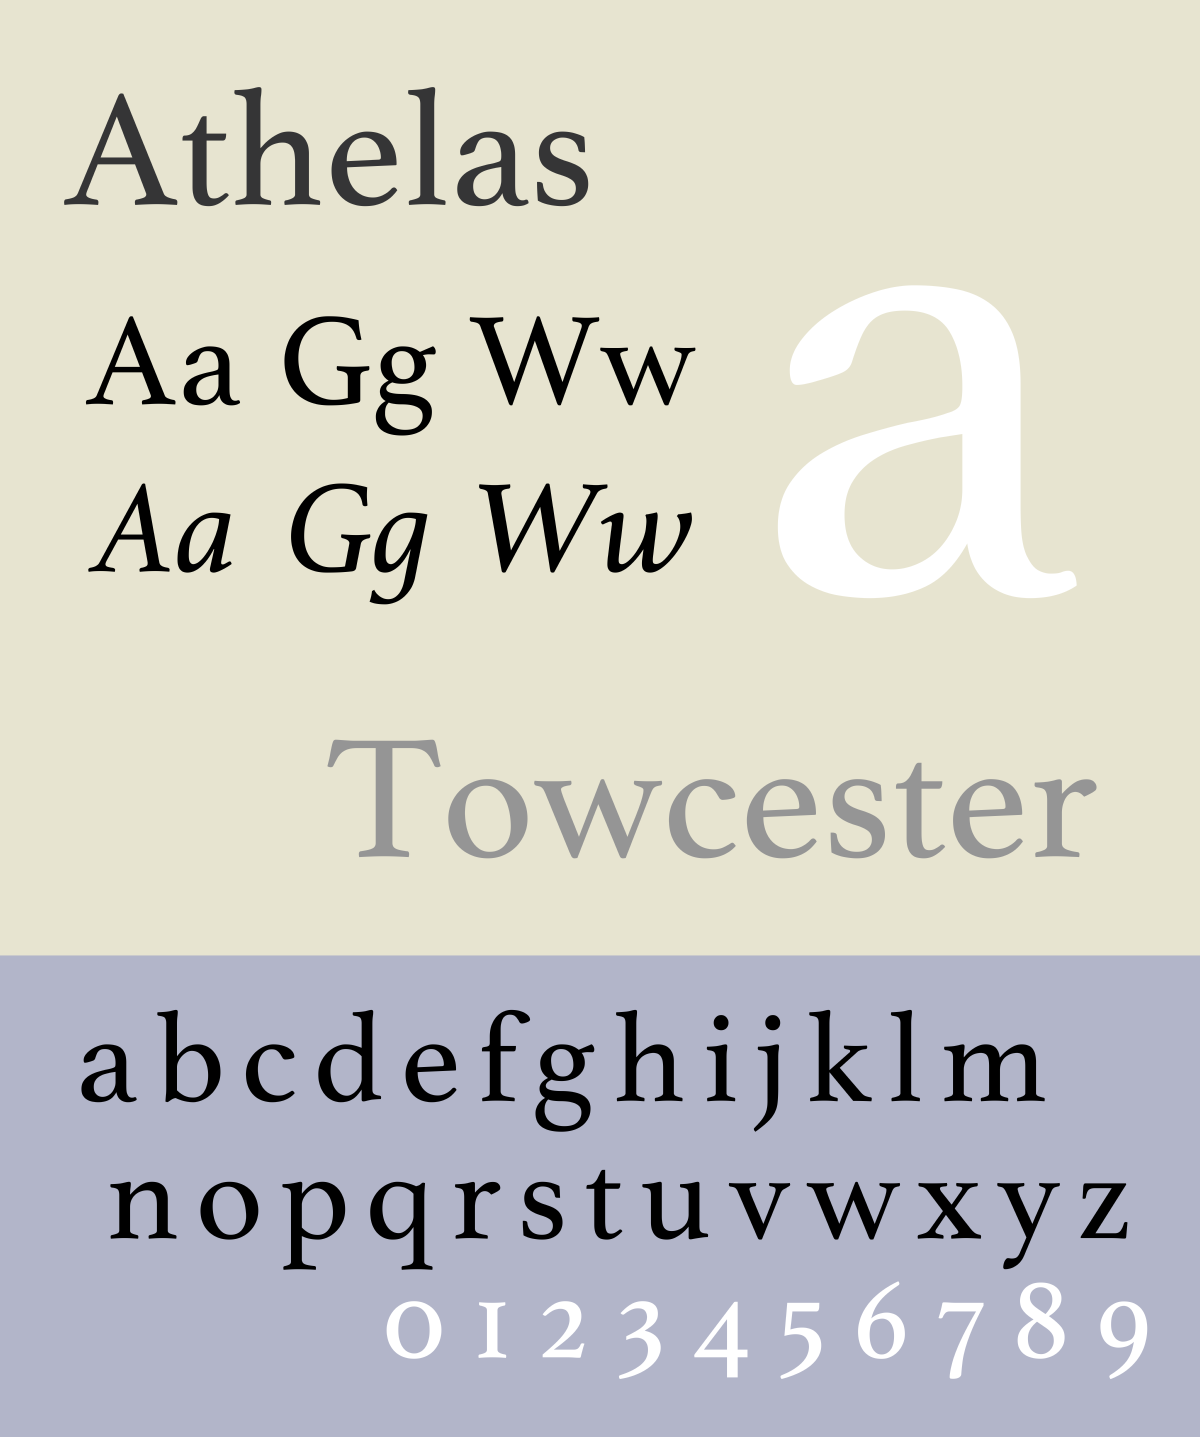 athelas typeface wikipedia - Best Fonts For Resume